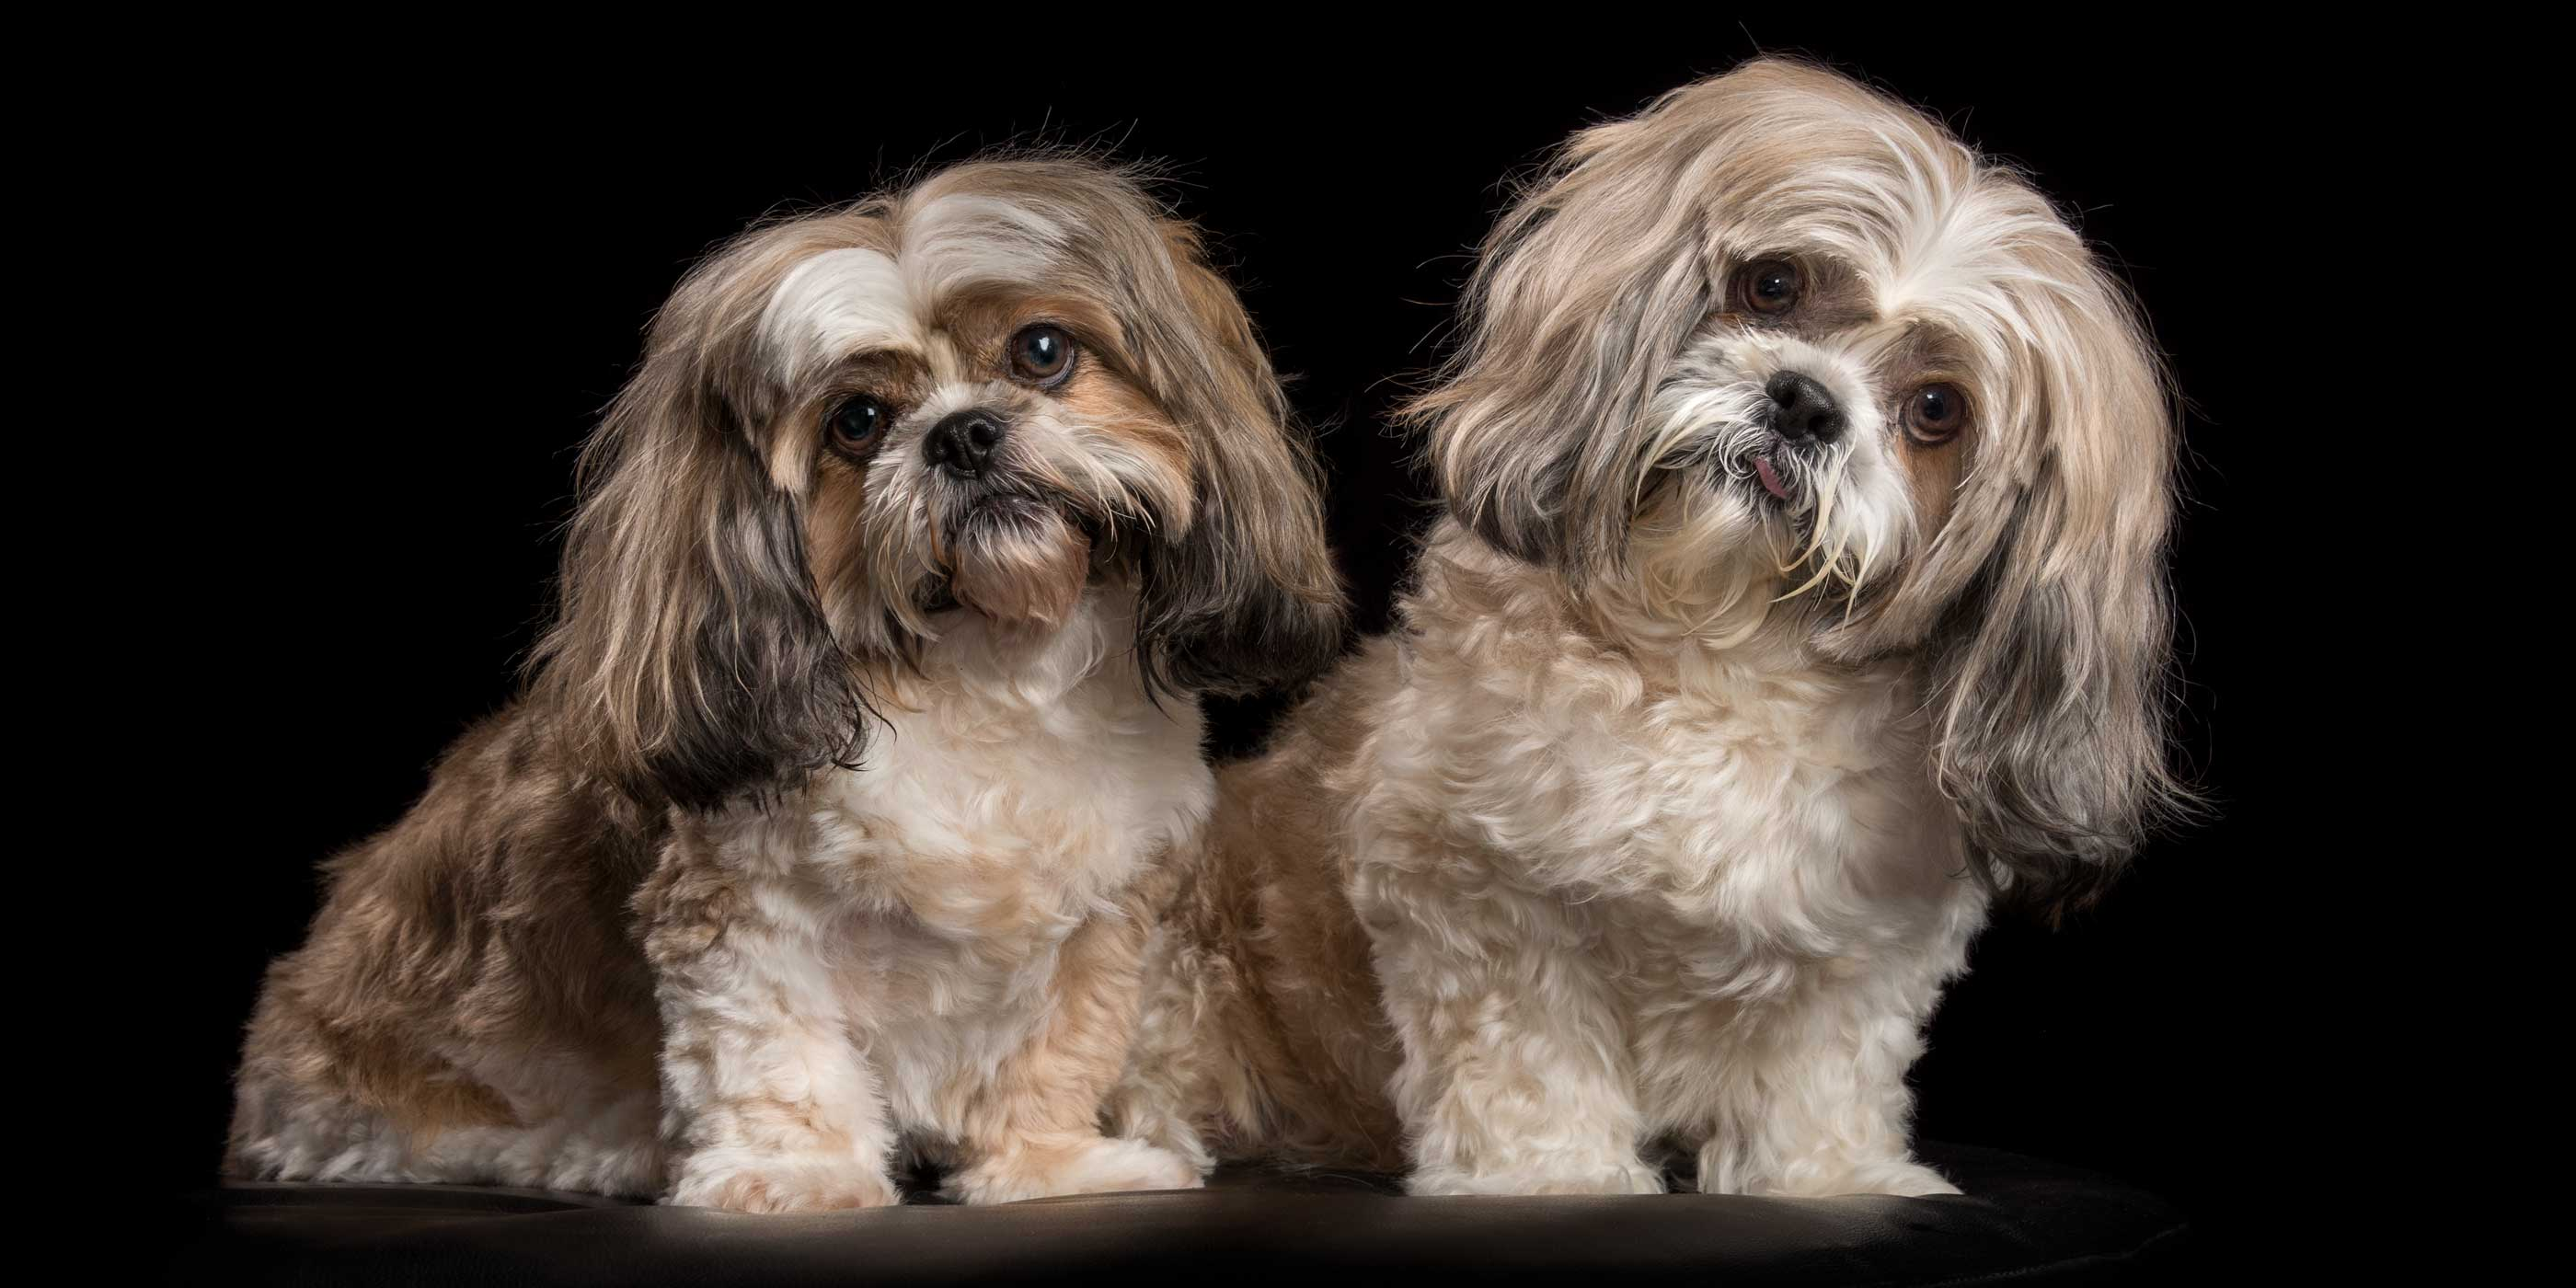 lhasa apso girl and shih tzu boy sitting together